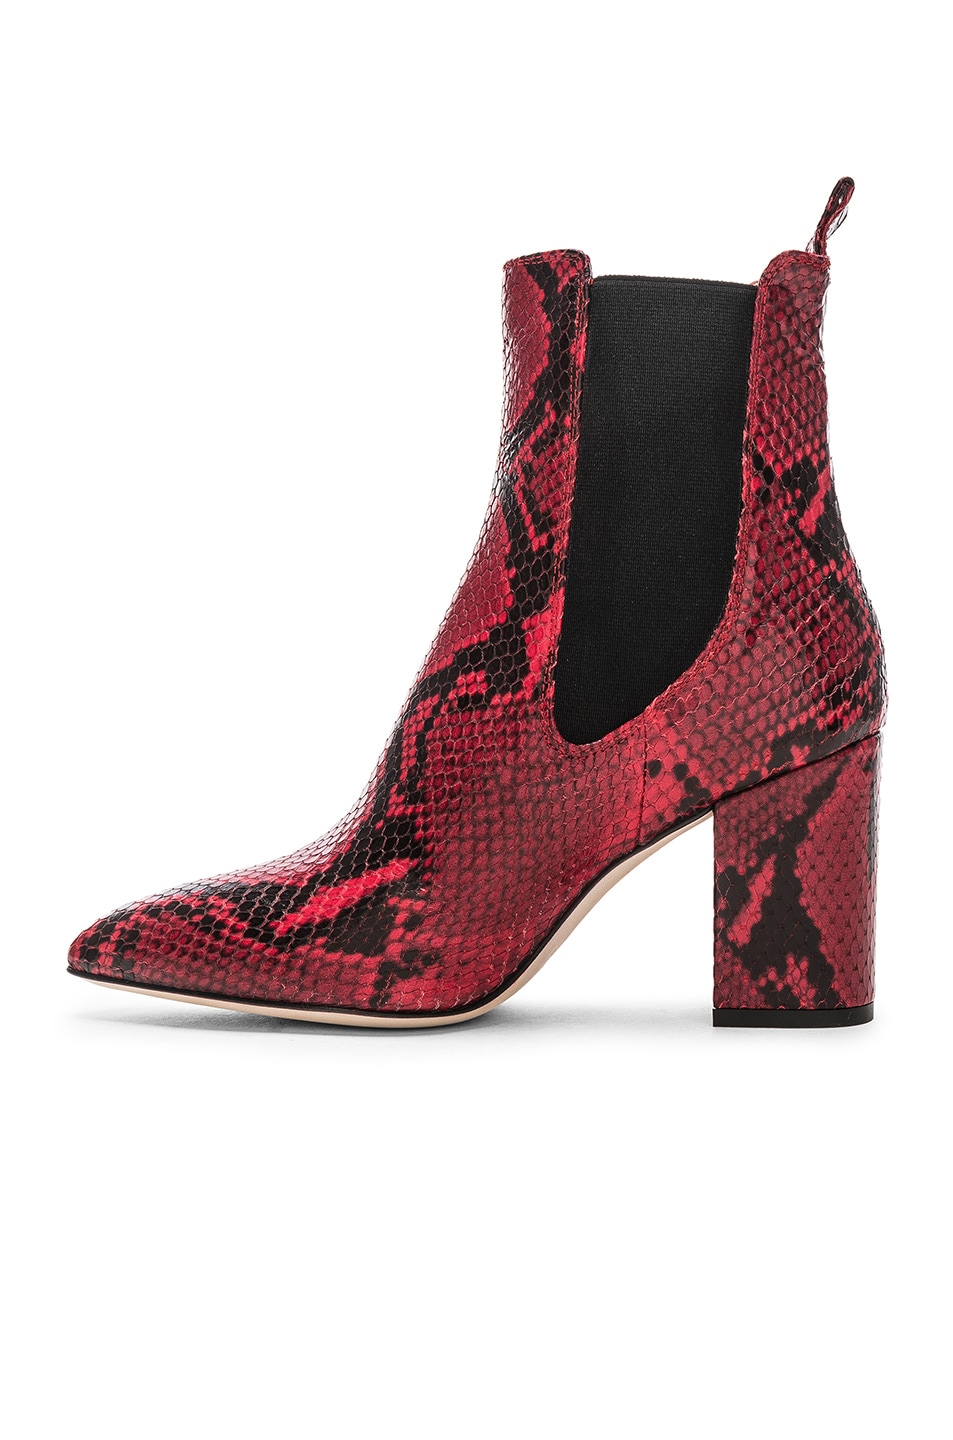 Image 5 of Paris Texas Python Print Ankle Boot in Red